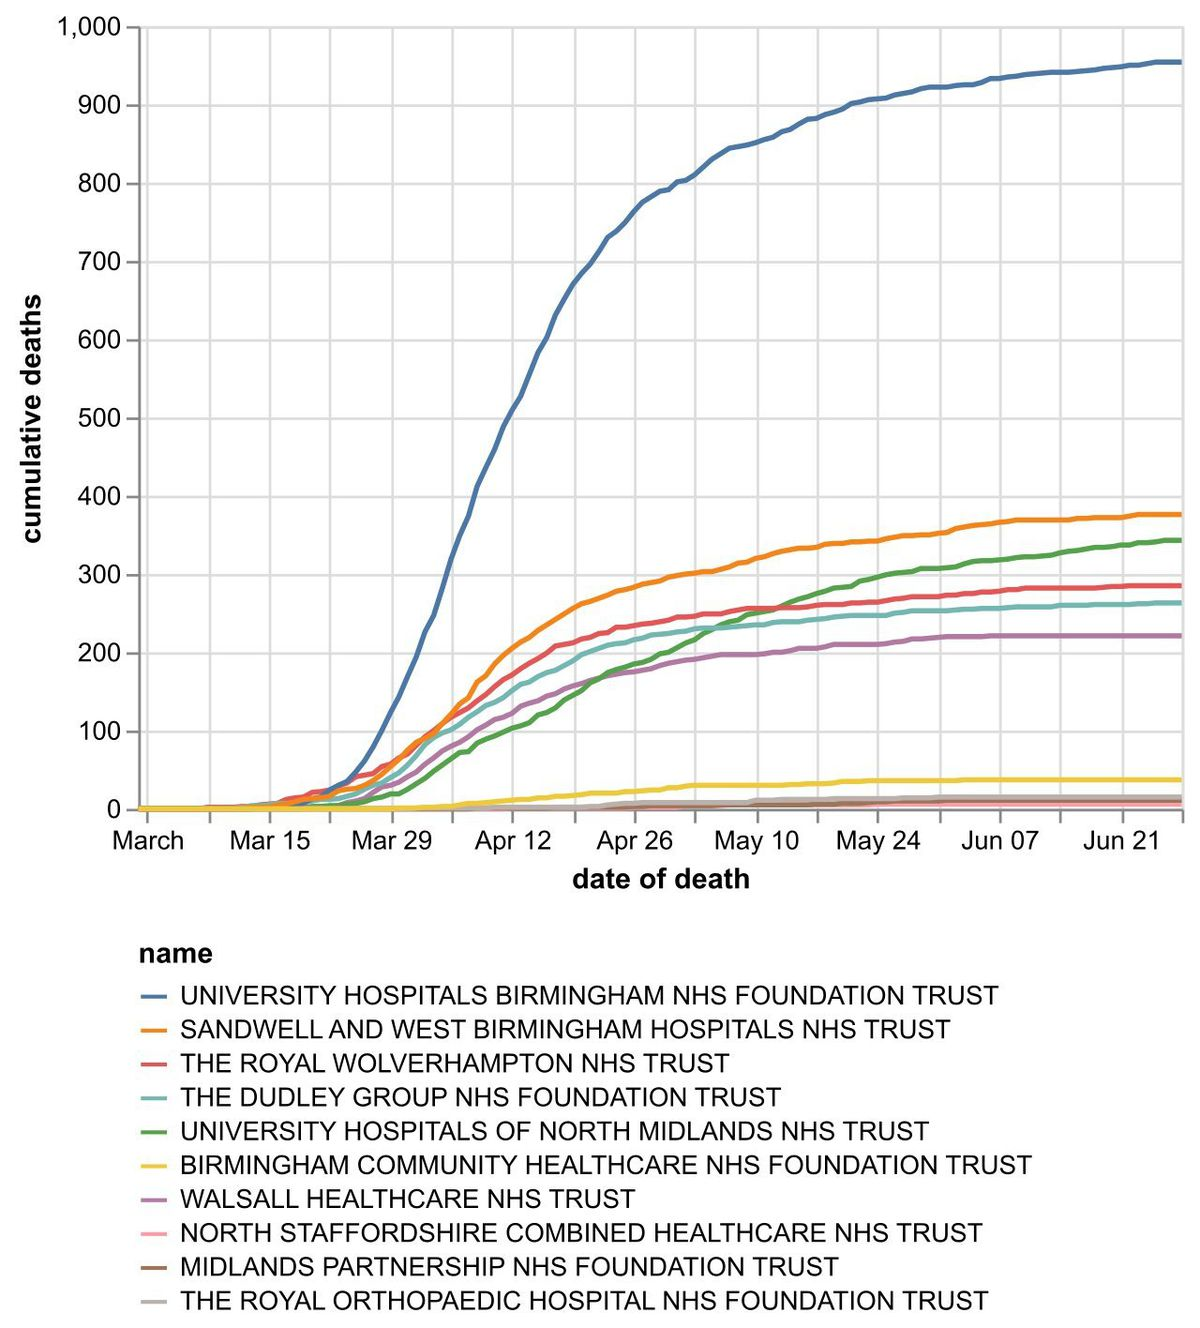 The cumulative number of coronavirus deaths at hospital trusts by date of death as of June 29. Data: NHS England. Figures likely to increase as further deaths announced.